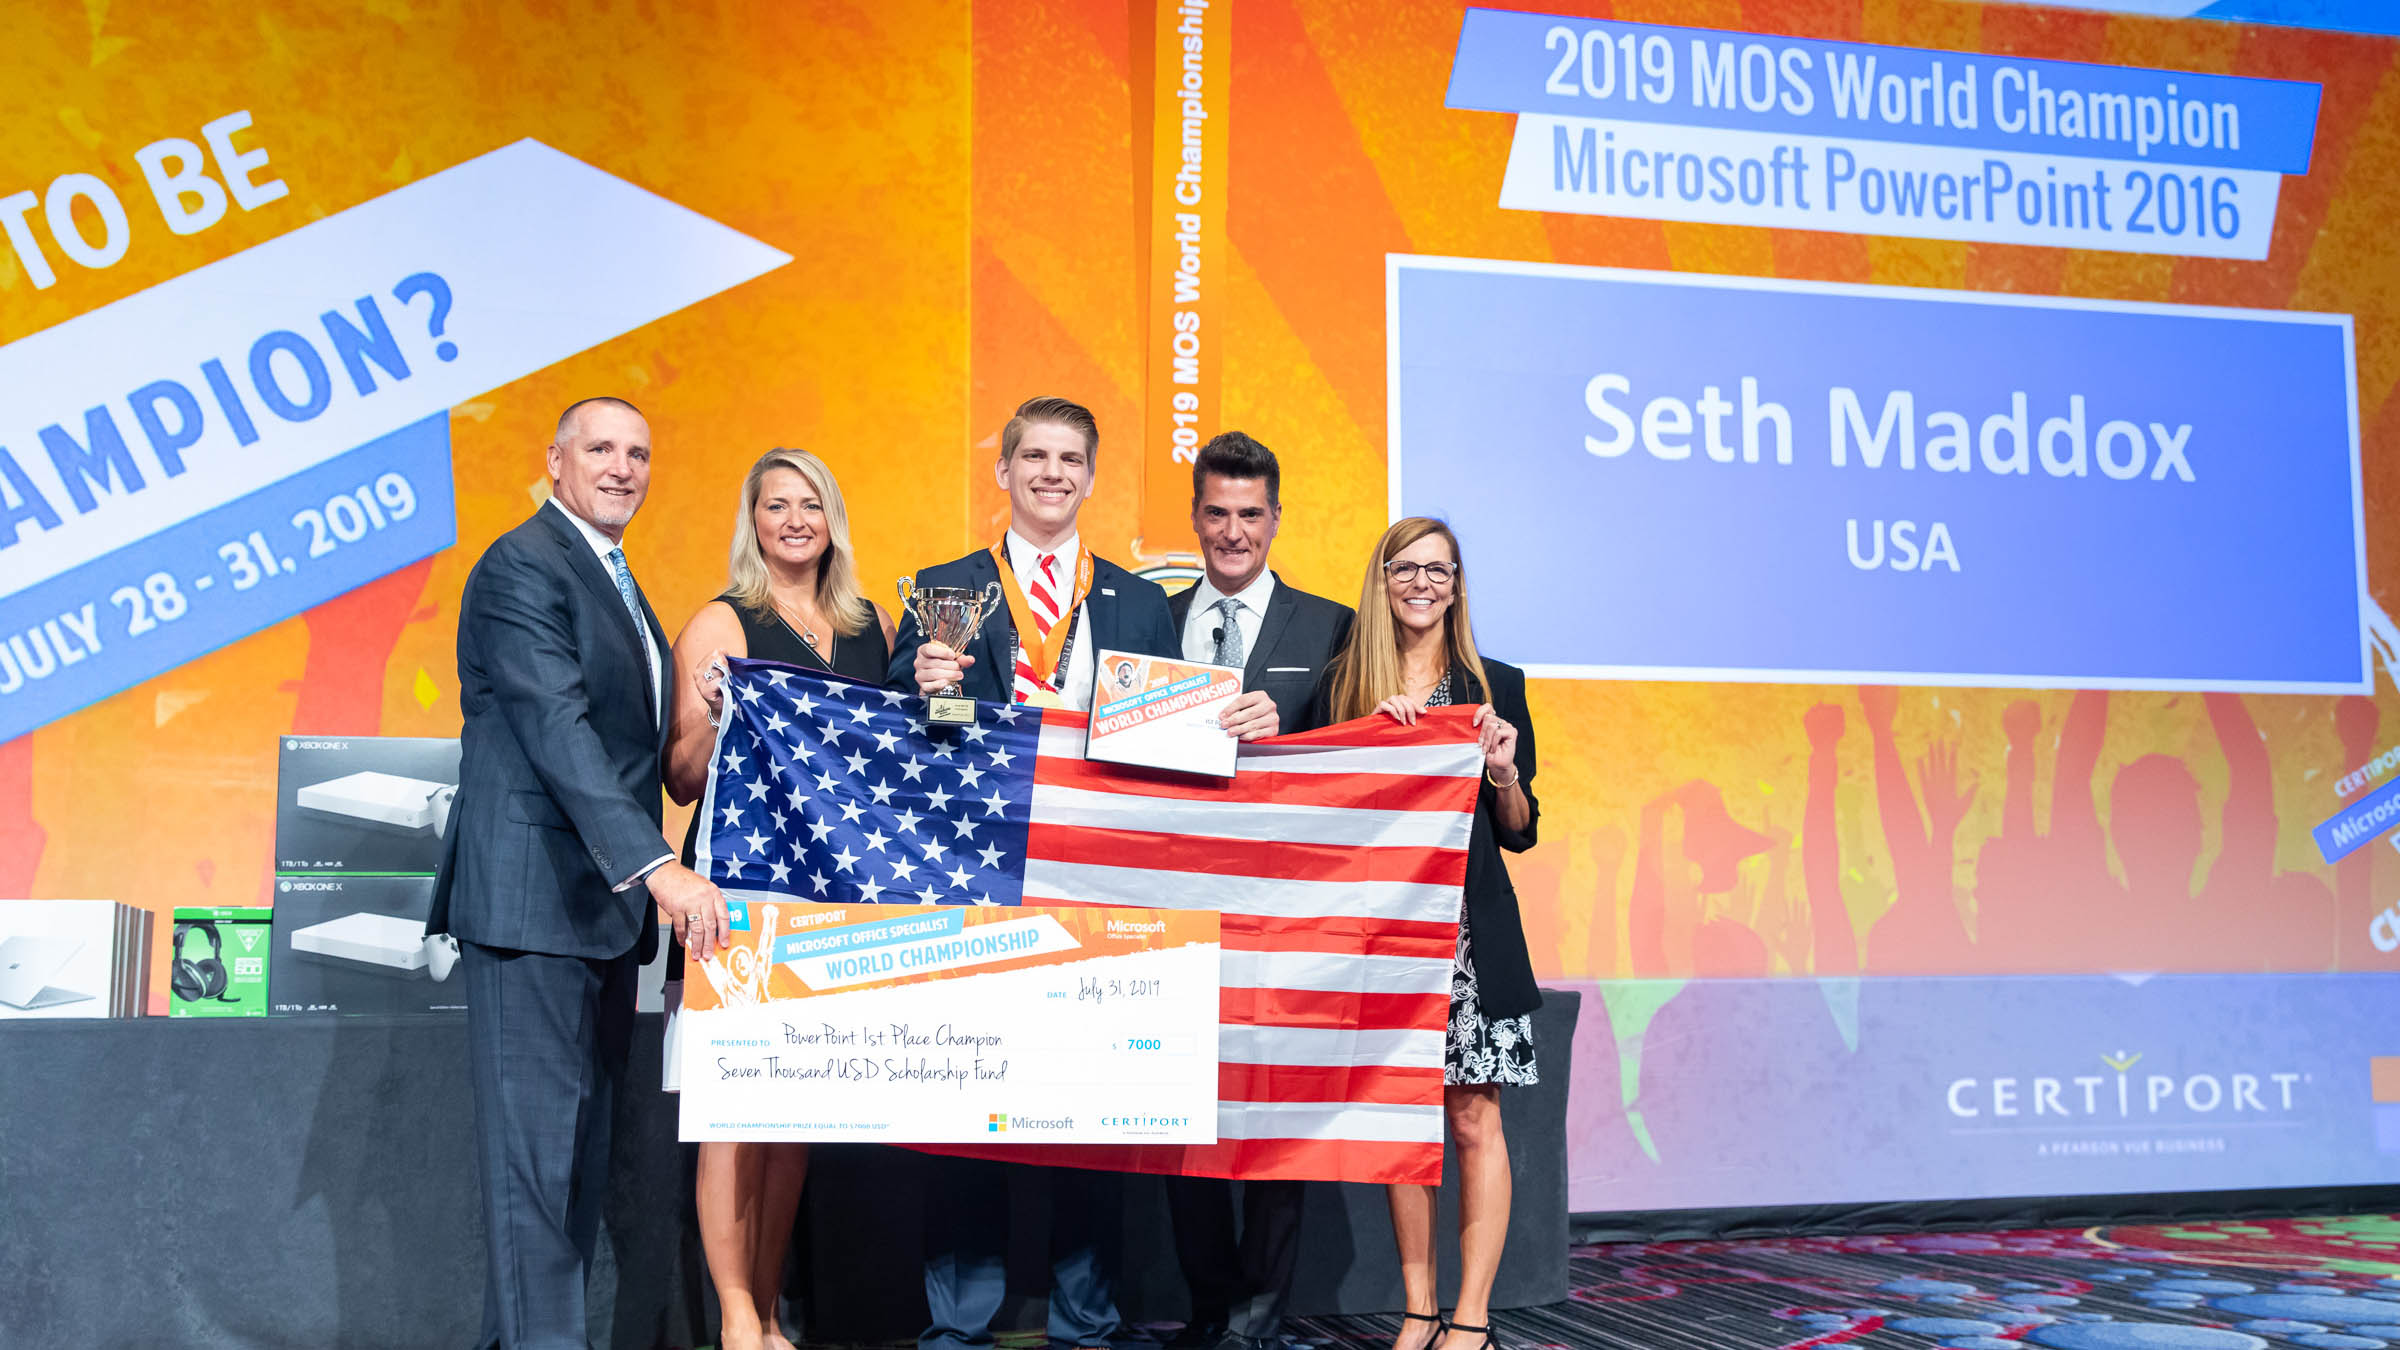 Incoming Auburn University freshman Seth Maddox was crowned the 2019 Microsoft Office Specialist PowerPoint World Champion on July 31 in New York. Pictured, from left, are Don Wagner and Nancy Jerdee with Pearson, Maddox, and Anthony Salcito and Jennifer Filarski with Microsoft.